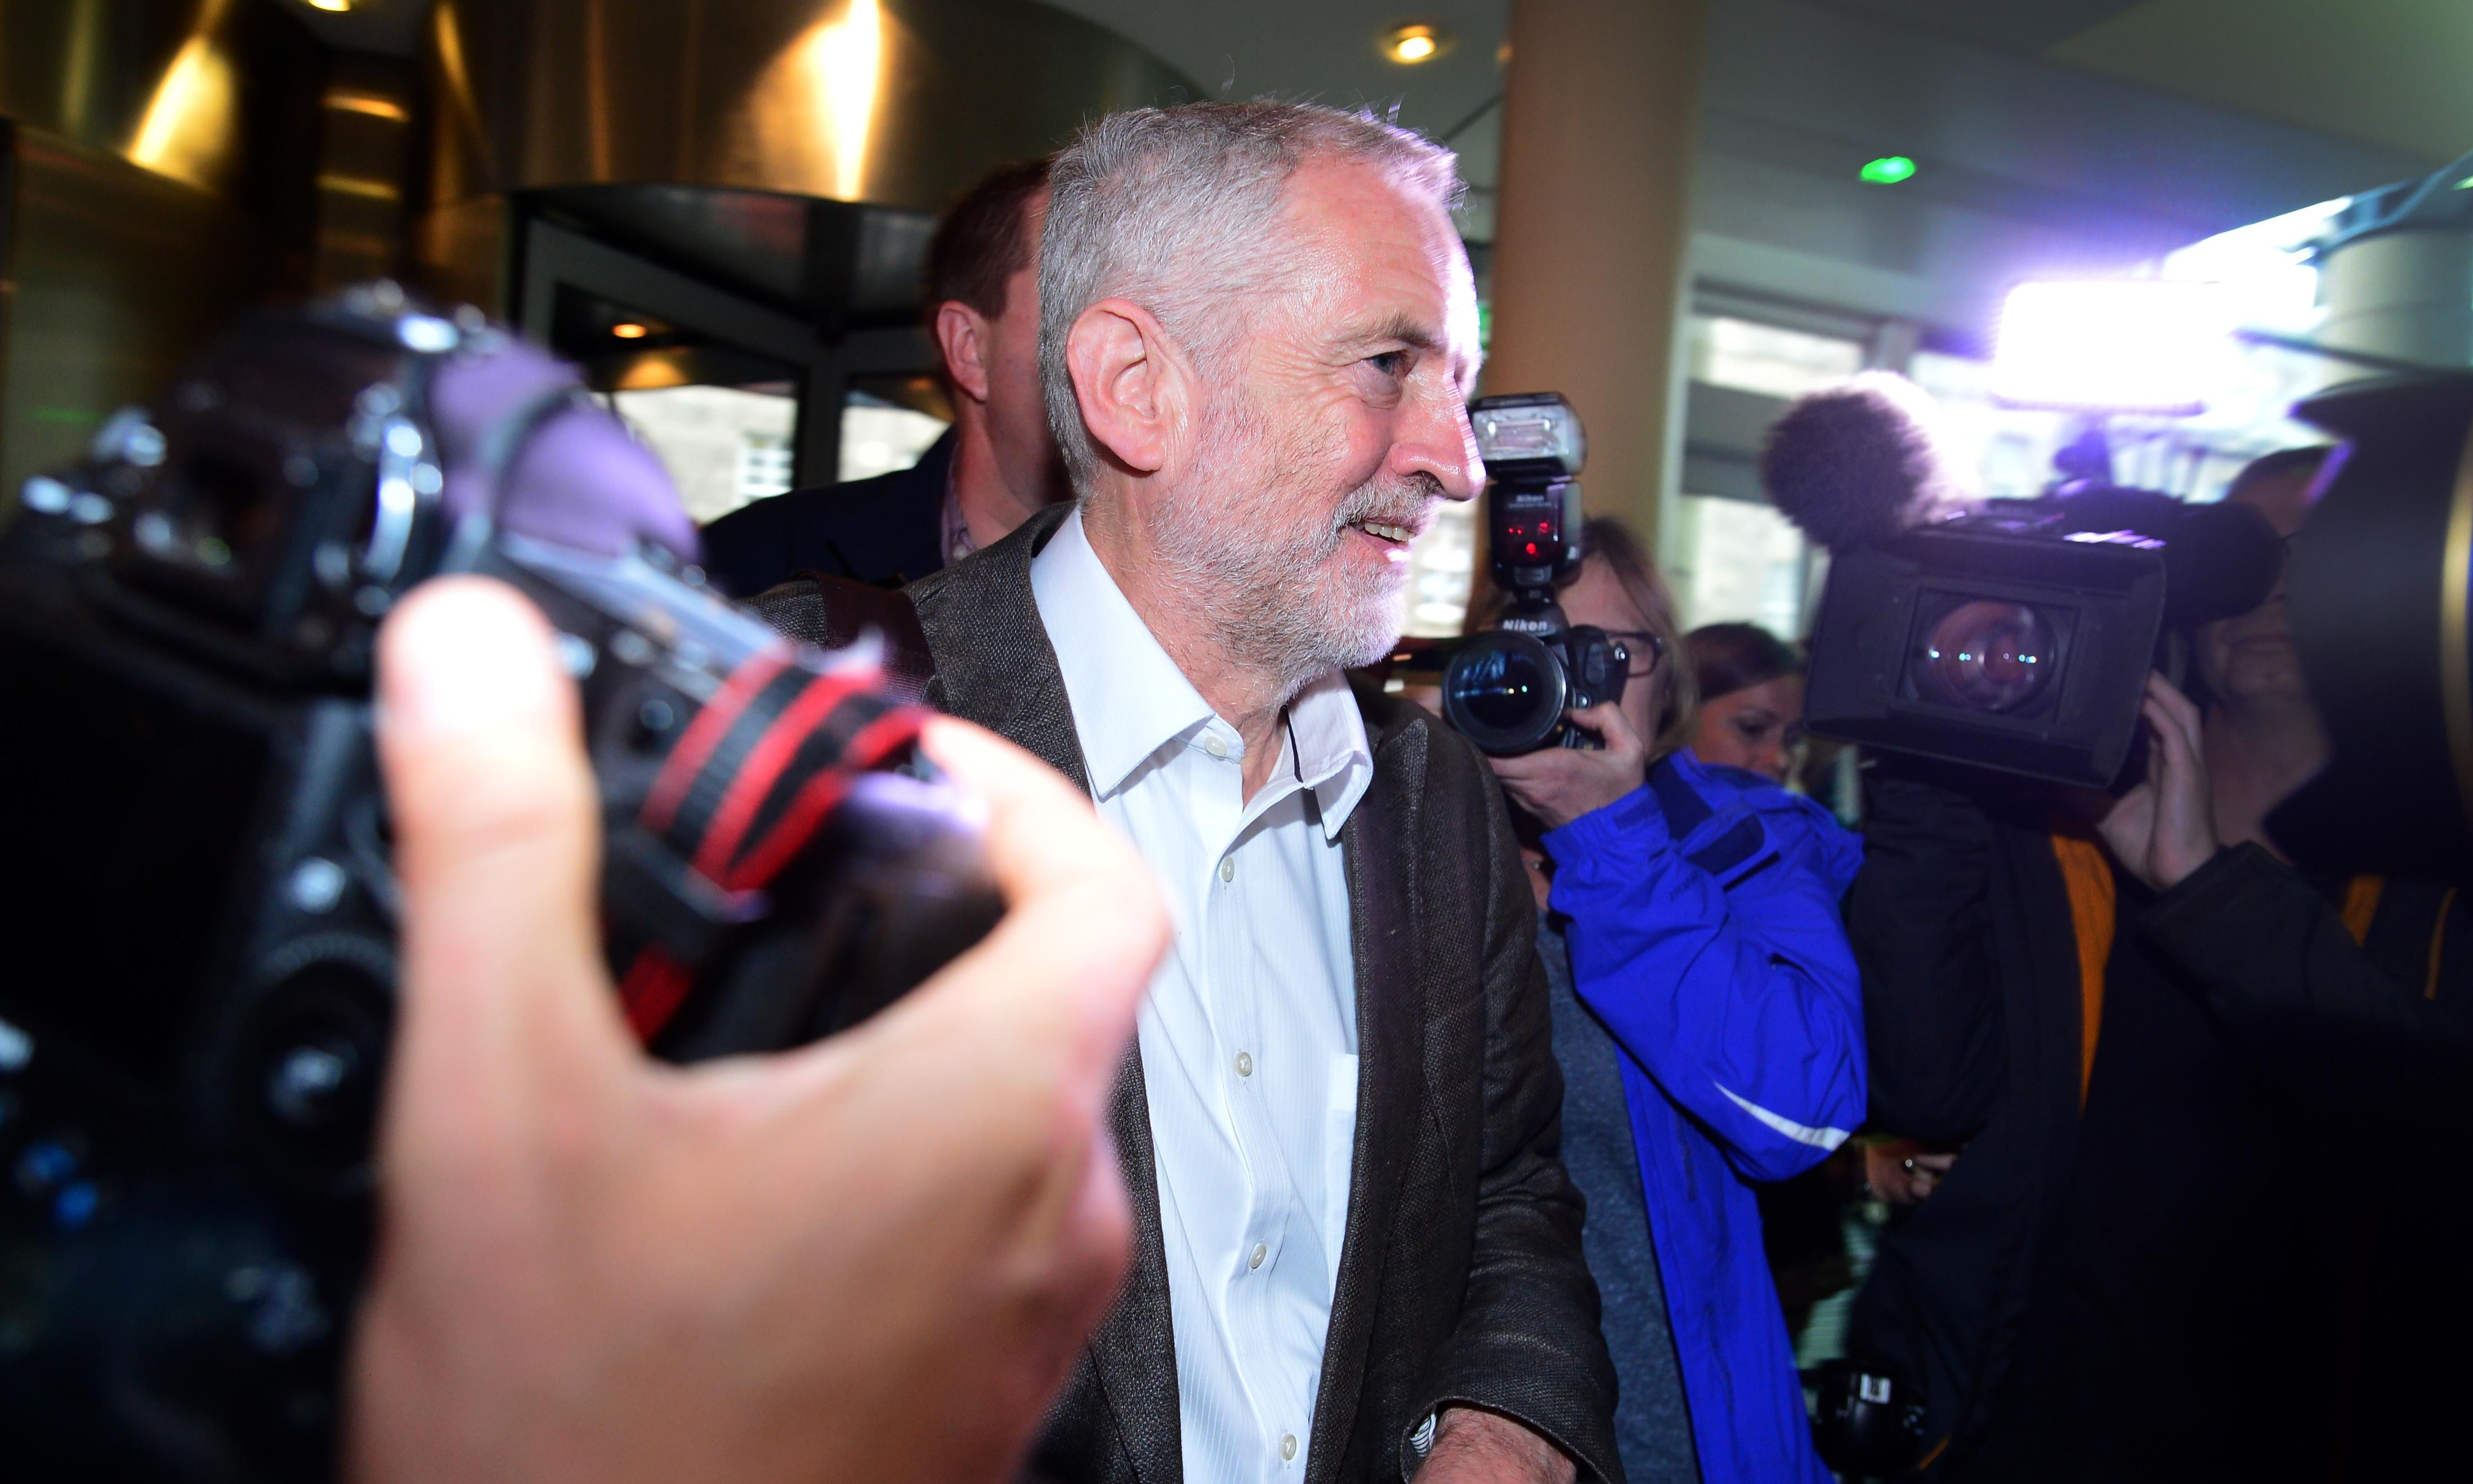 Scottish Labour campaigners rally behind Jeremy Corbyn